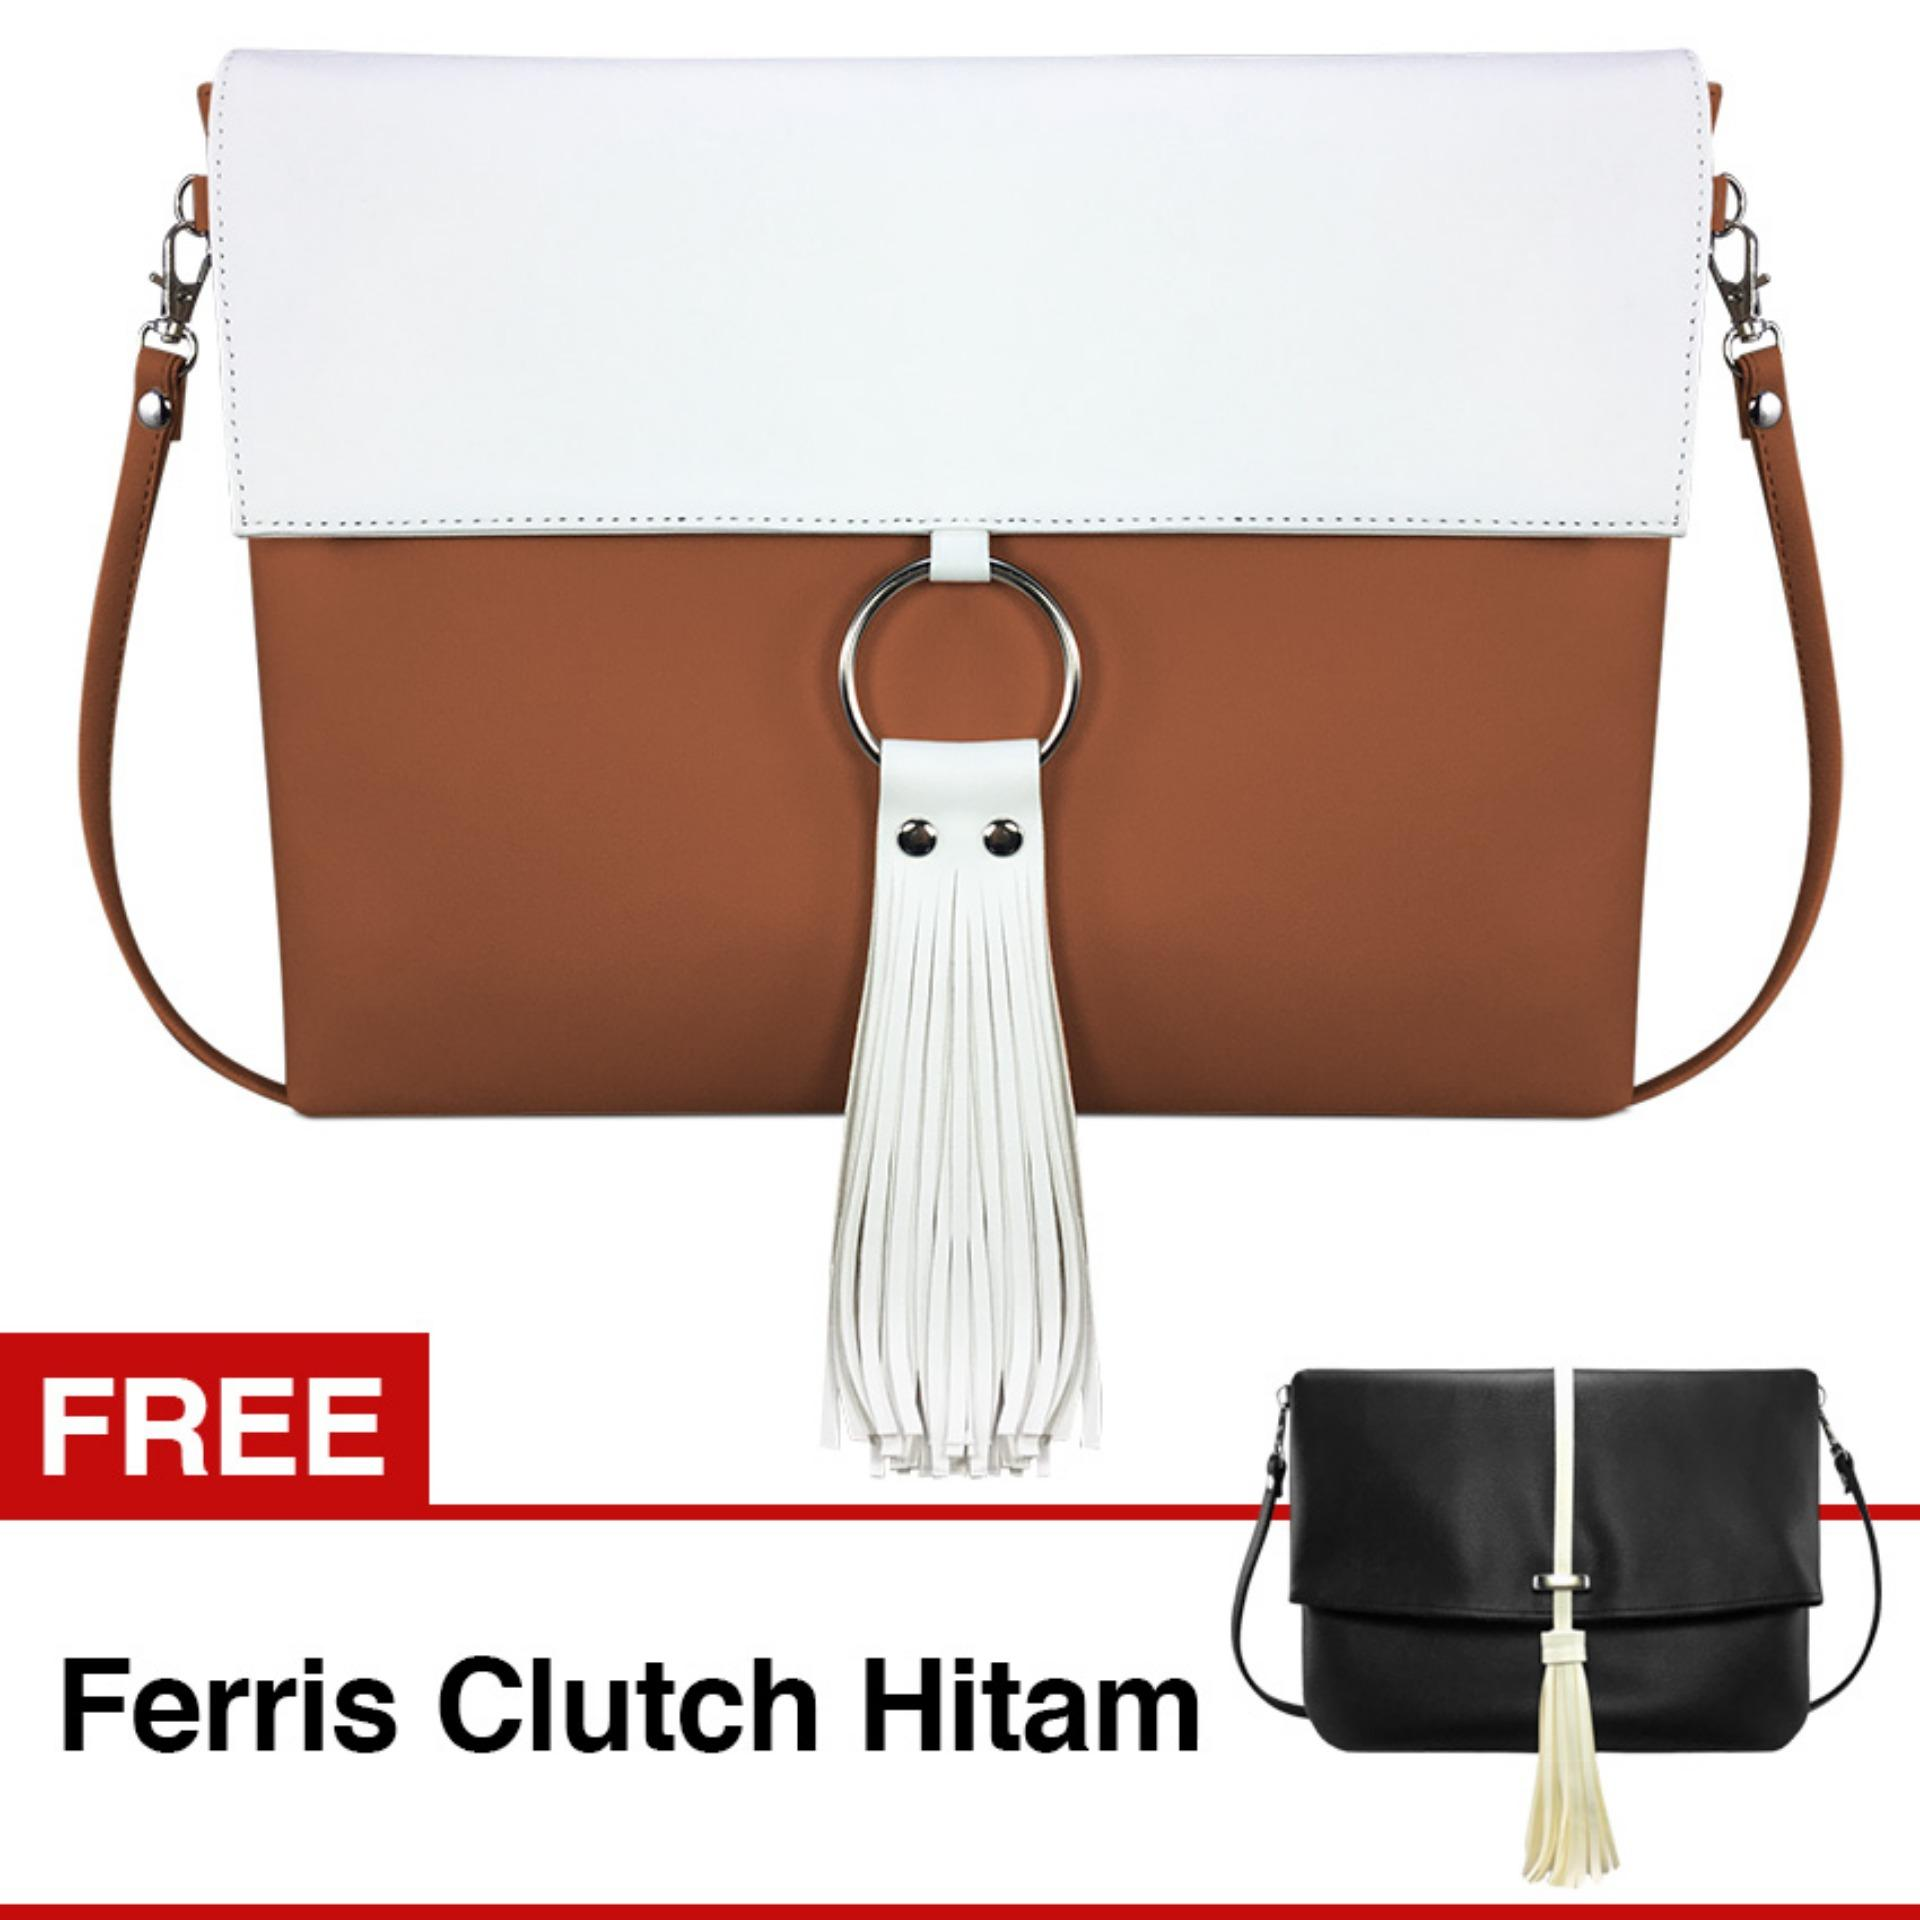 Beli Vona Robin Gratis Free Ferris Hitam Paket 2 In 1 Tas Wanita Selempang Tangan Shoulder Bag Handbag Sling Crossbody Tote Dompet Slingbag Purse Clutch Faux Pu Leather Kulit Sintetis Tali Panjang Best Seller Terbaru New Branded Fashion Korean Style Nyicil